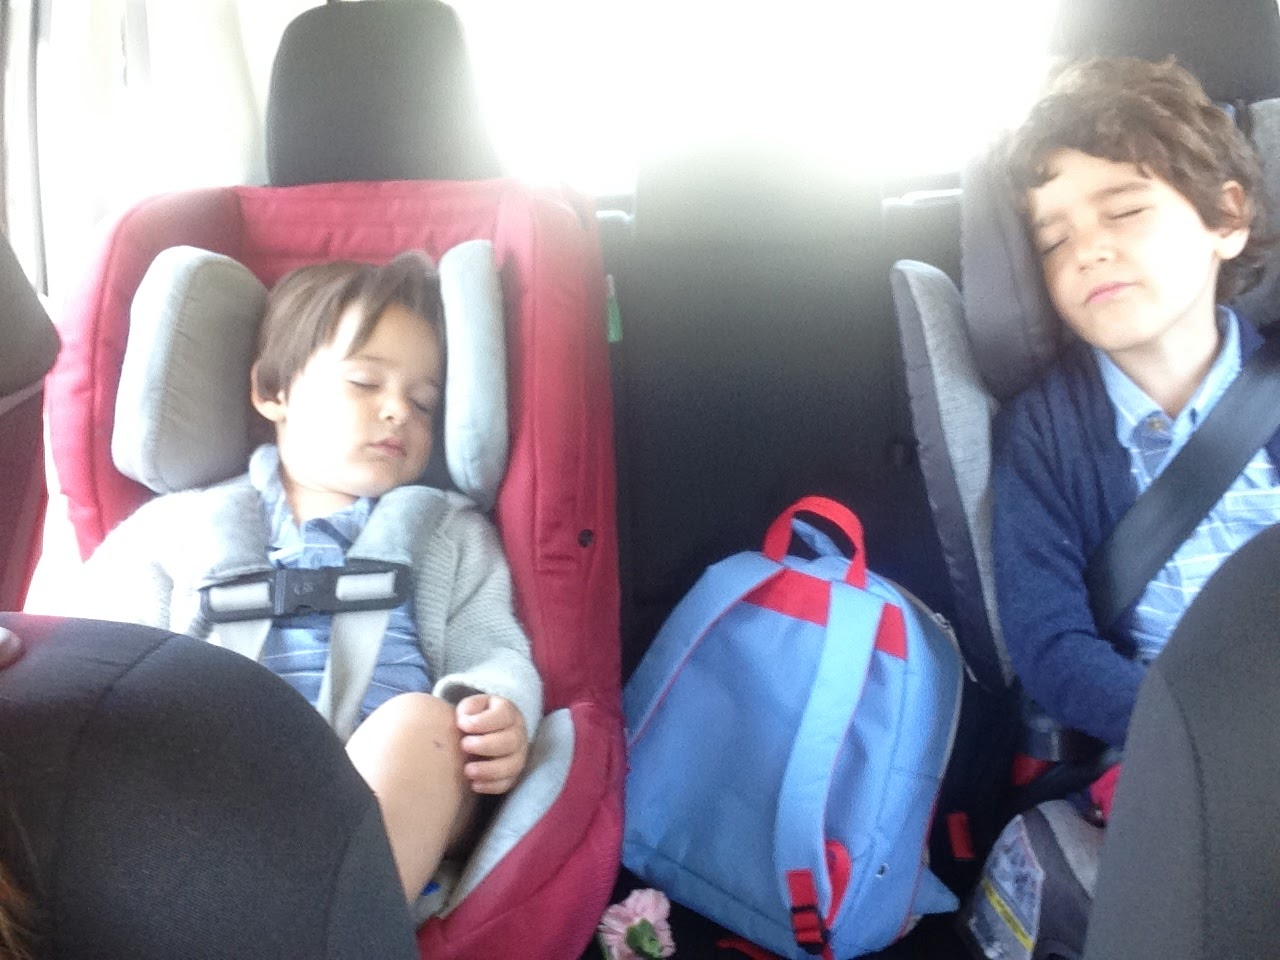 in december 2016 a new study tested 15 car seats for flame retardant chemicals to read the results read our blog post flame retardants chemicals still